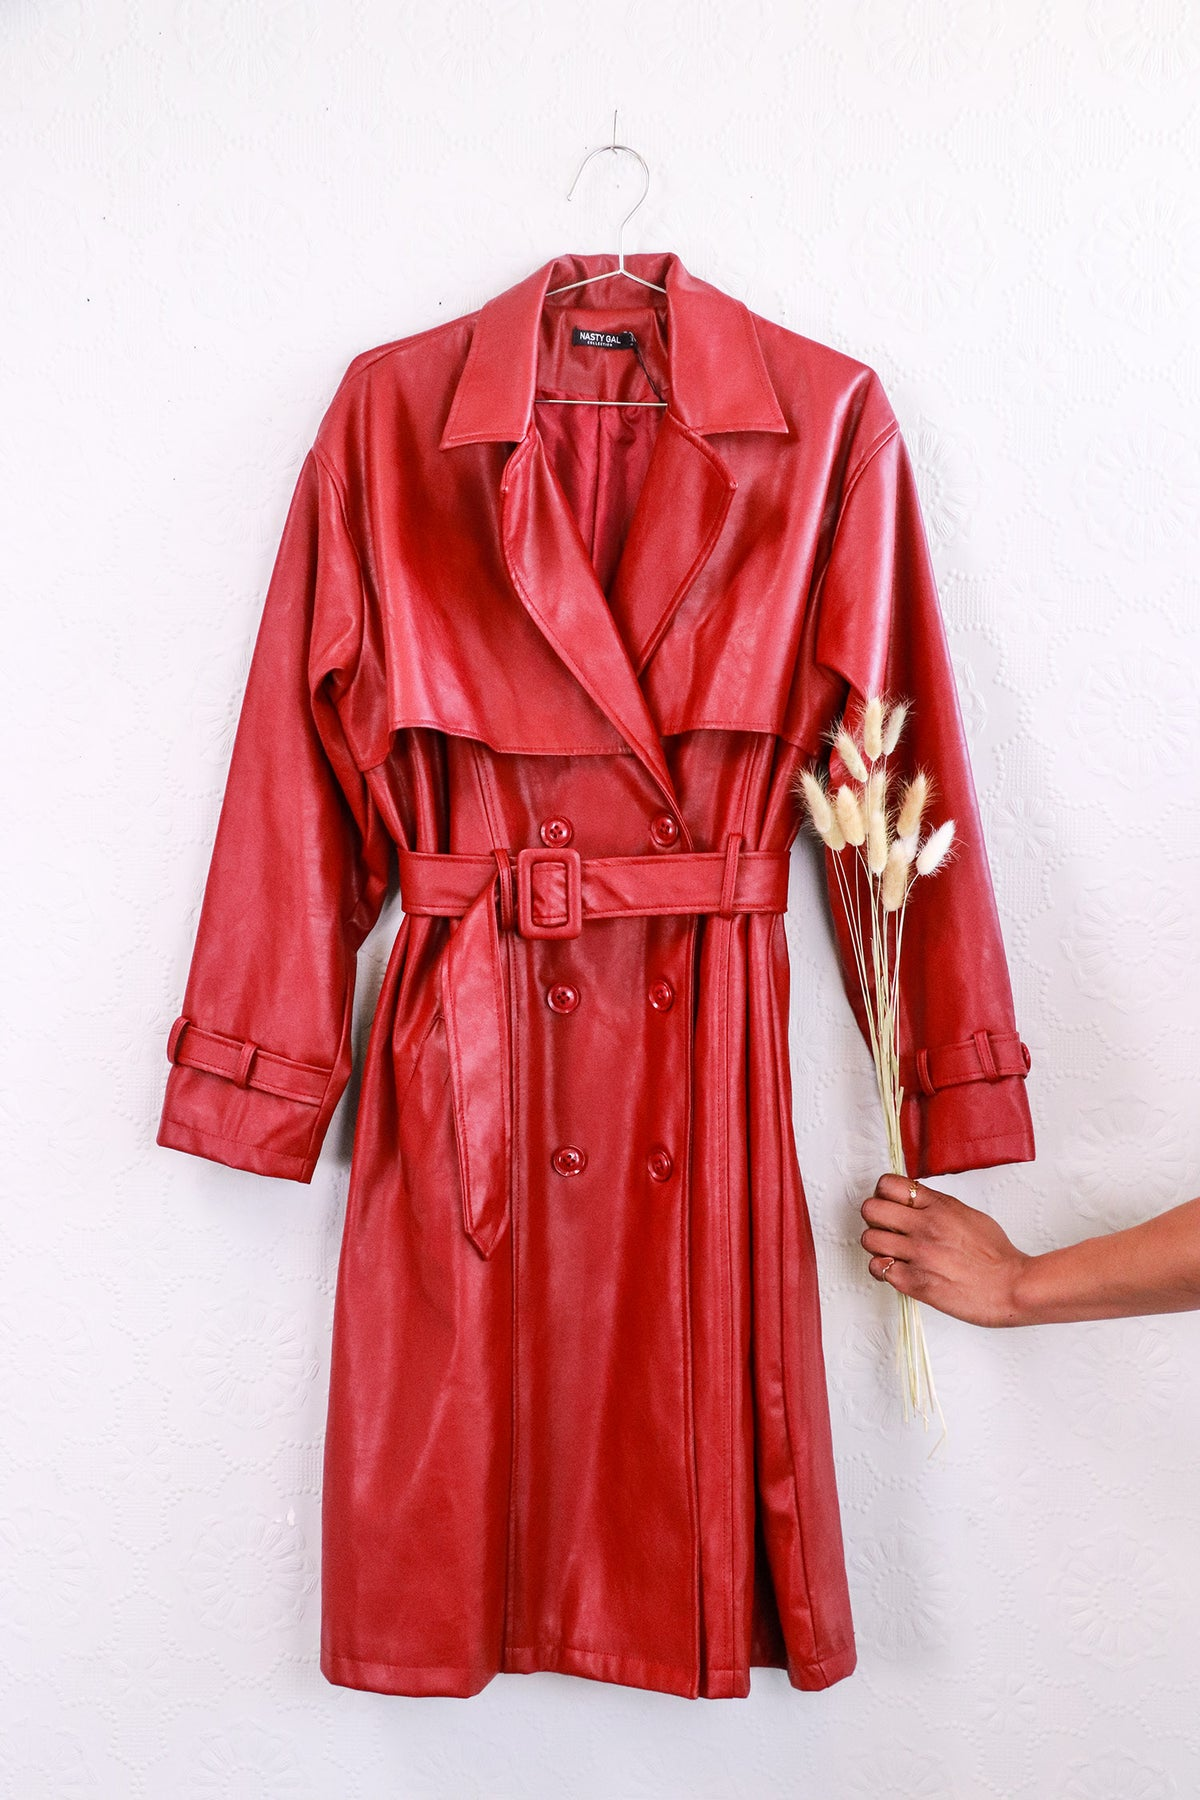 Nasty Gal - Red Faux Leather Trench Coat - 6